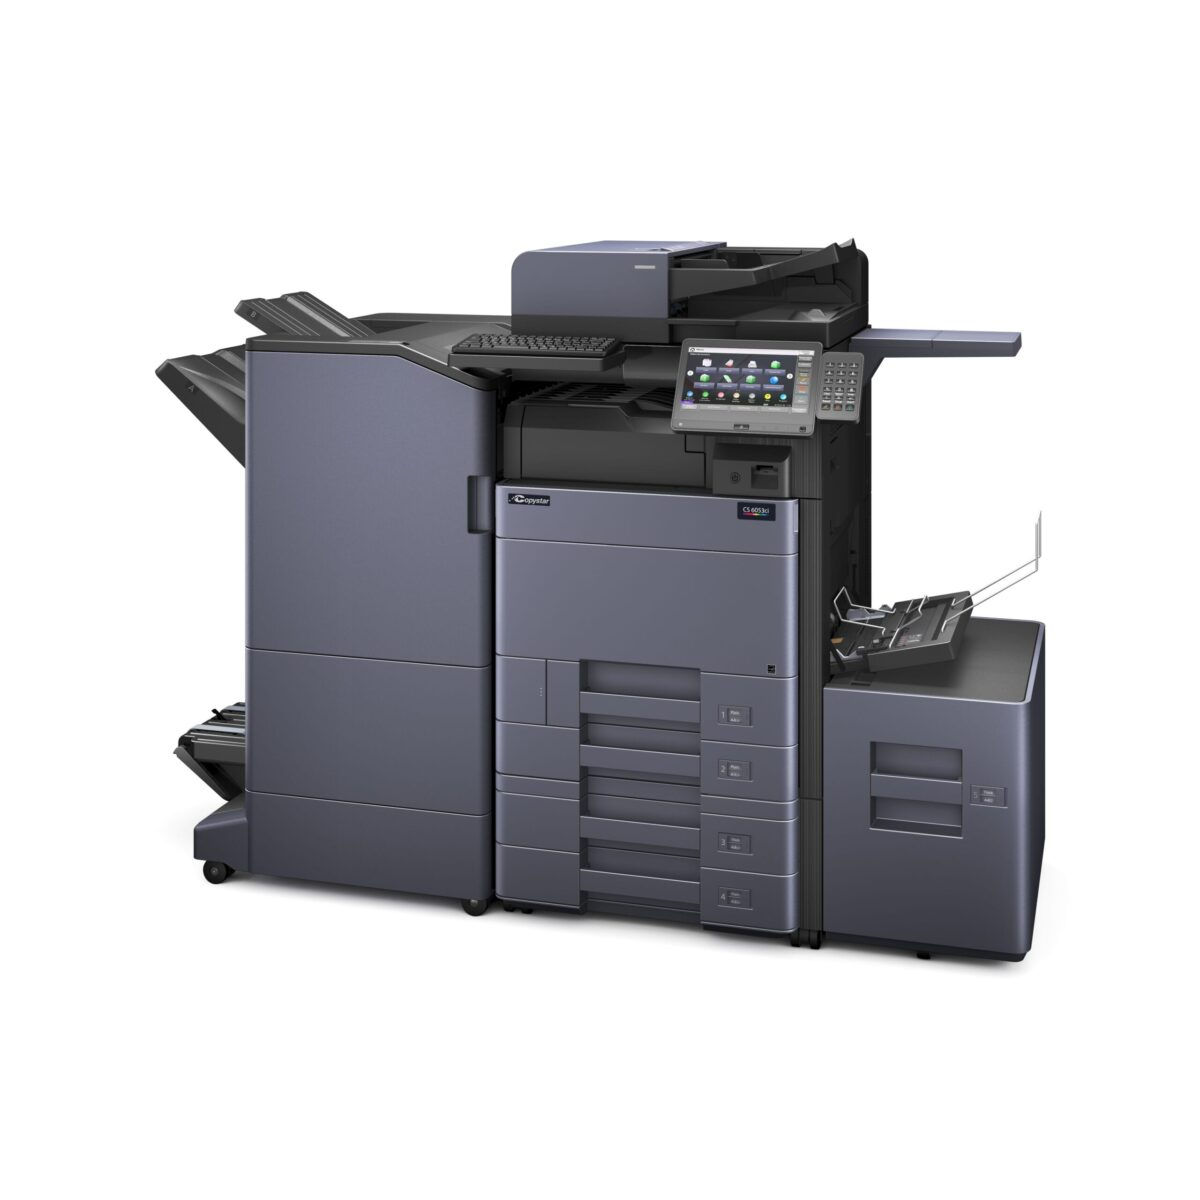 Copiers up to 11 x 17